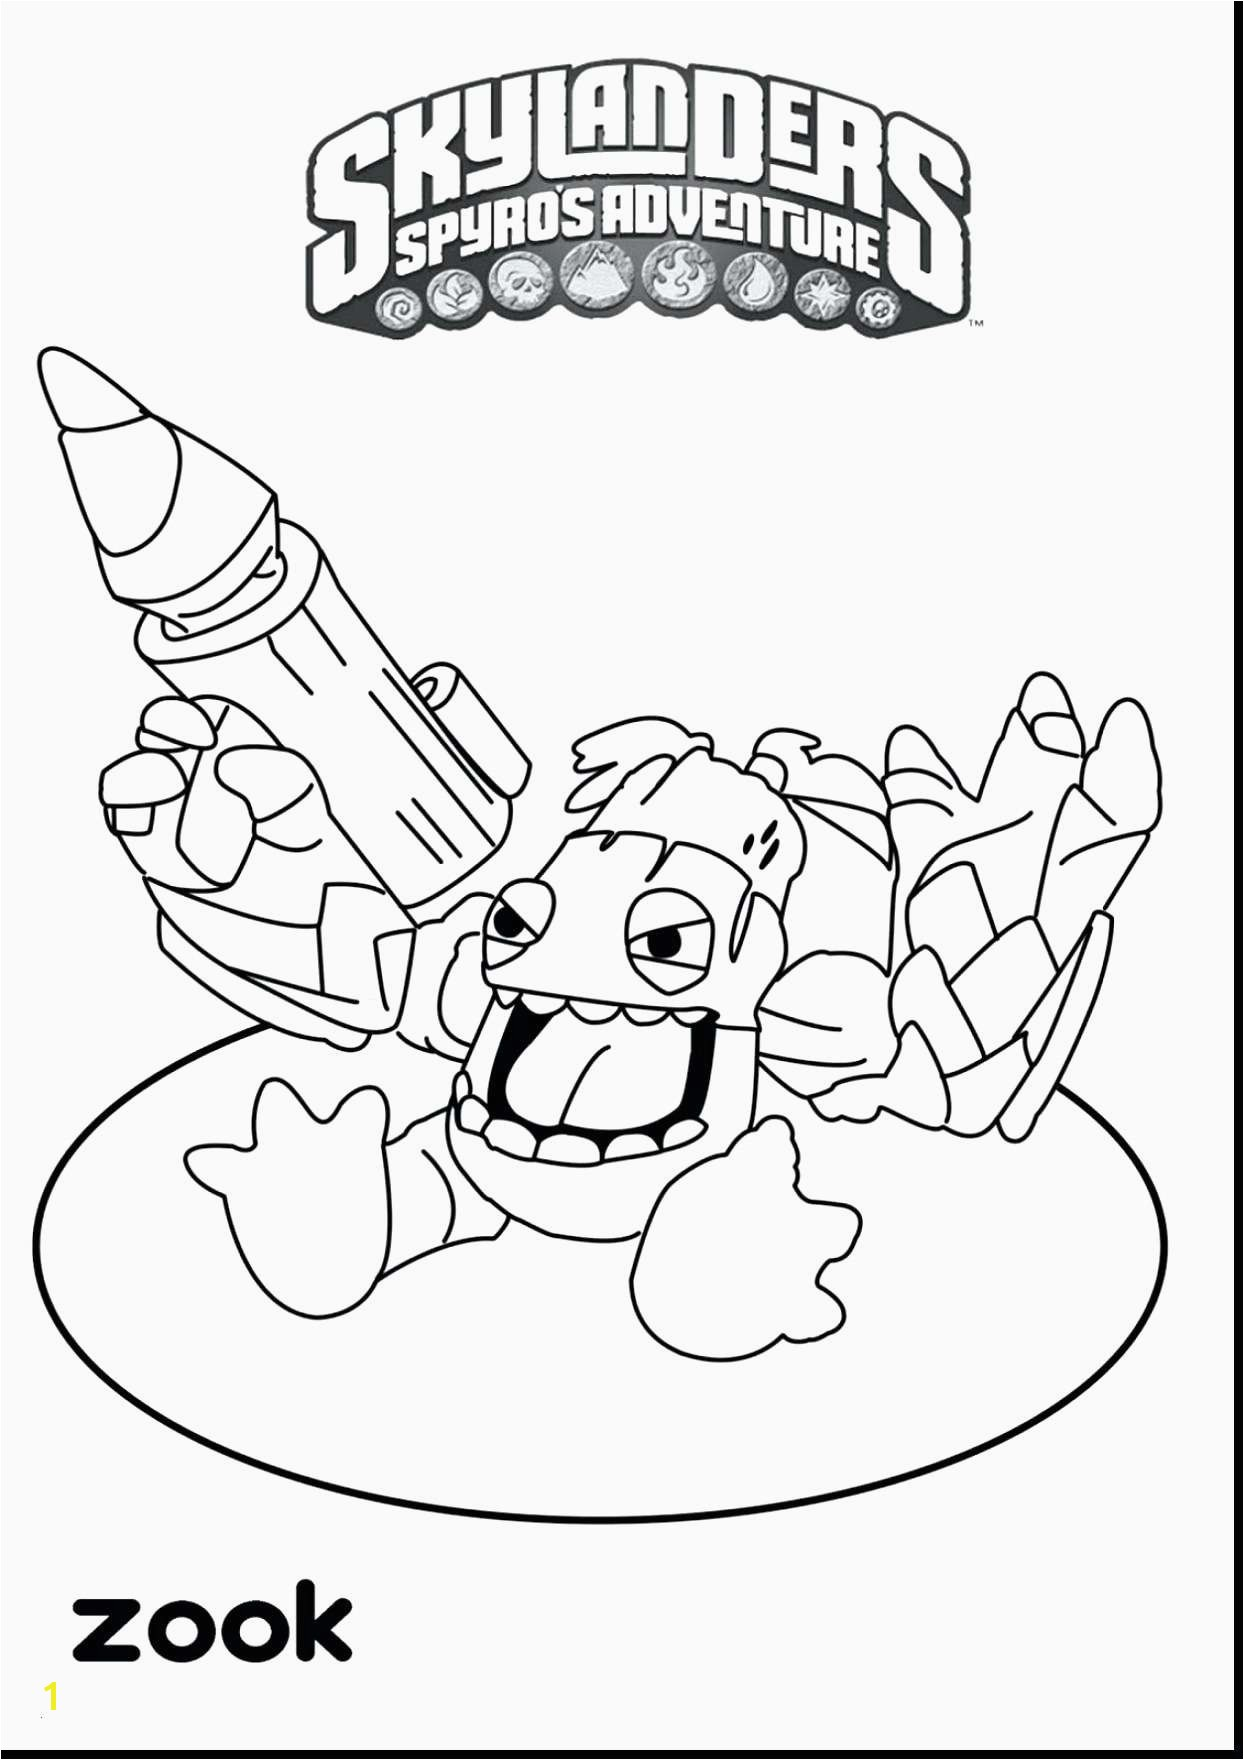 Free Coloring Pages for Boy Beautiful Free Kids S Best Page Coloring 0d Free Coloring Pages